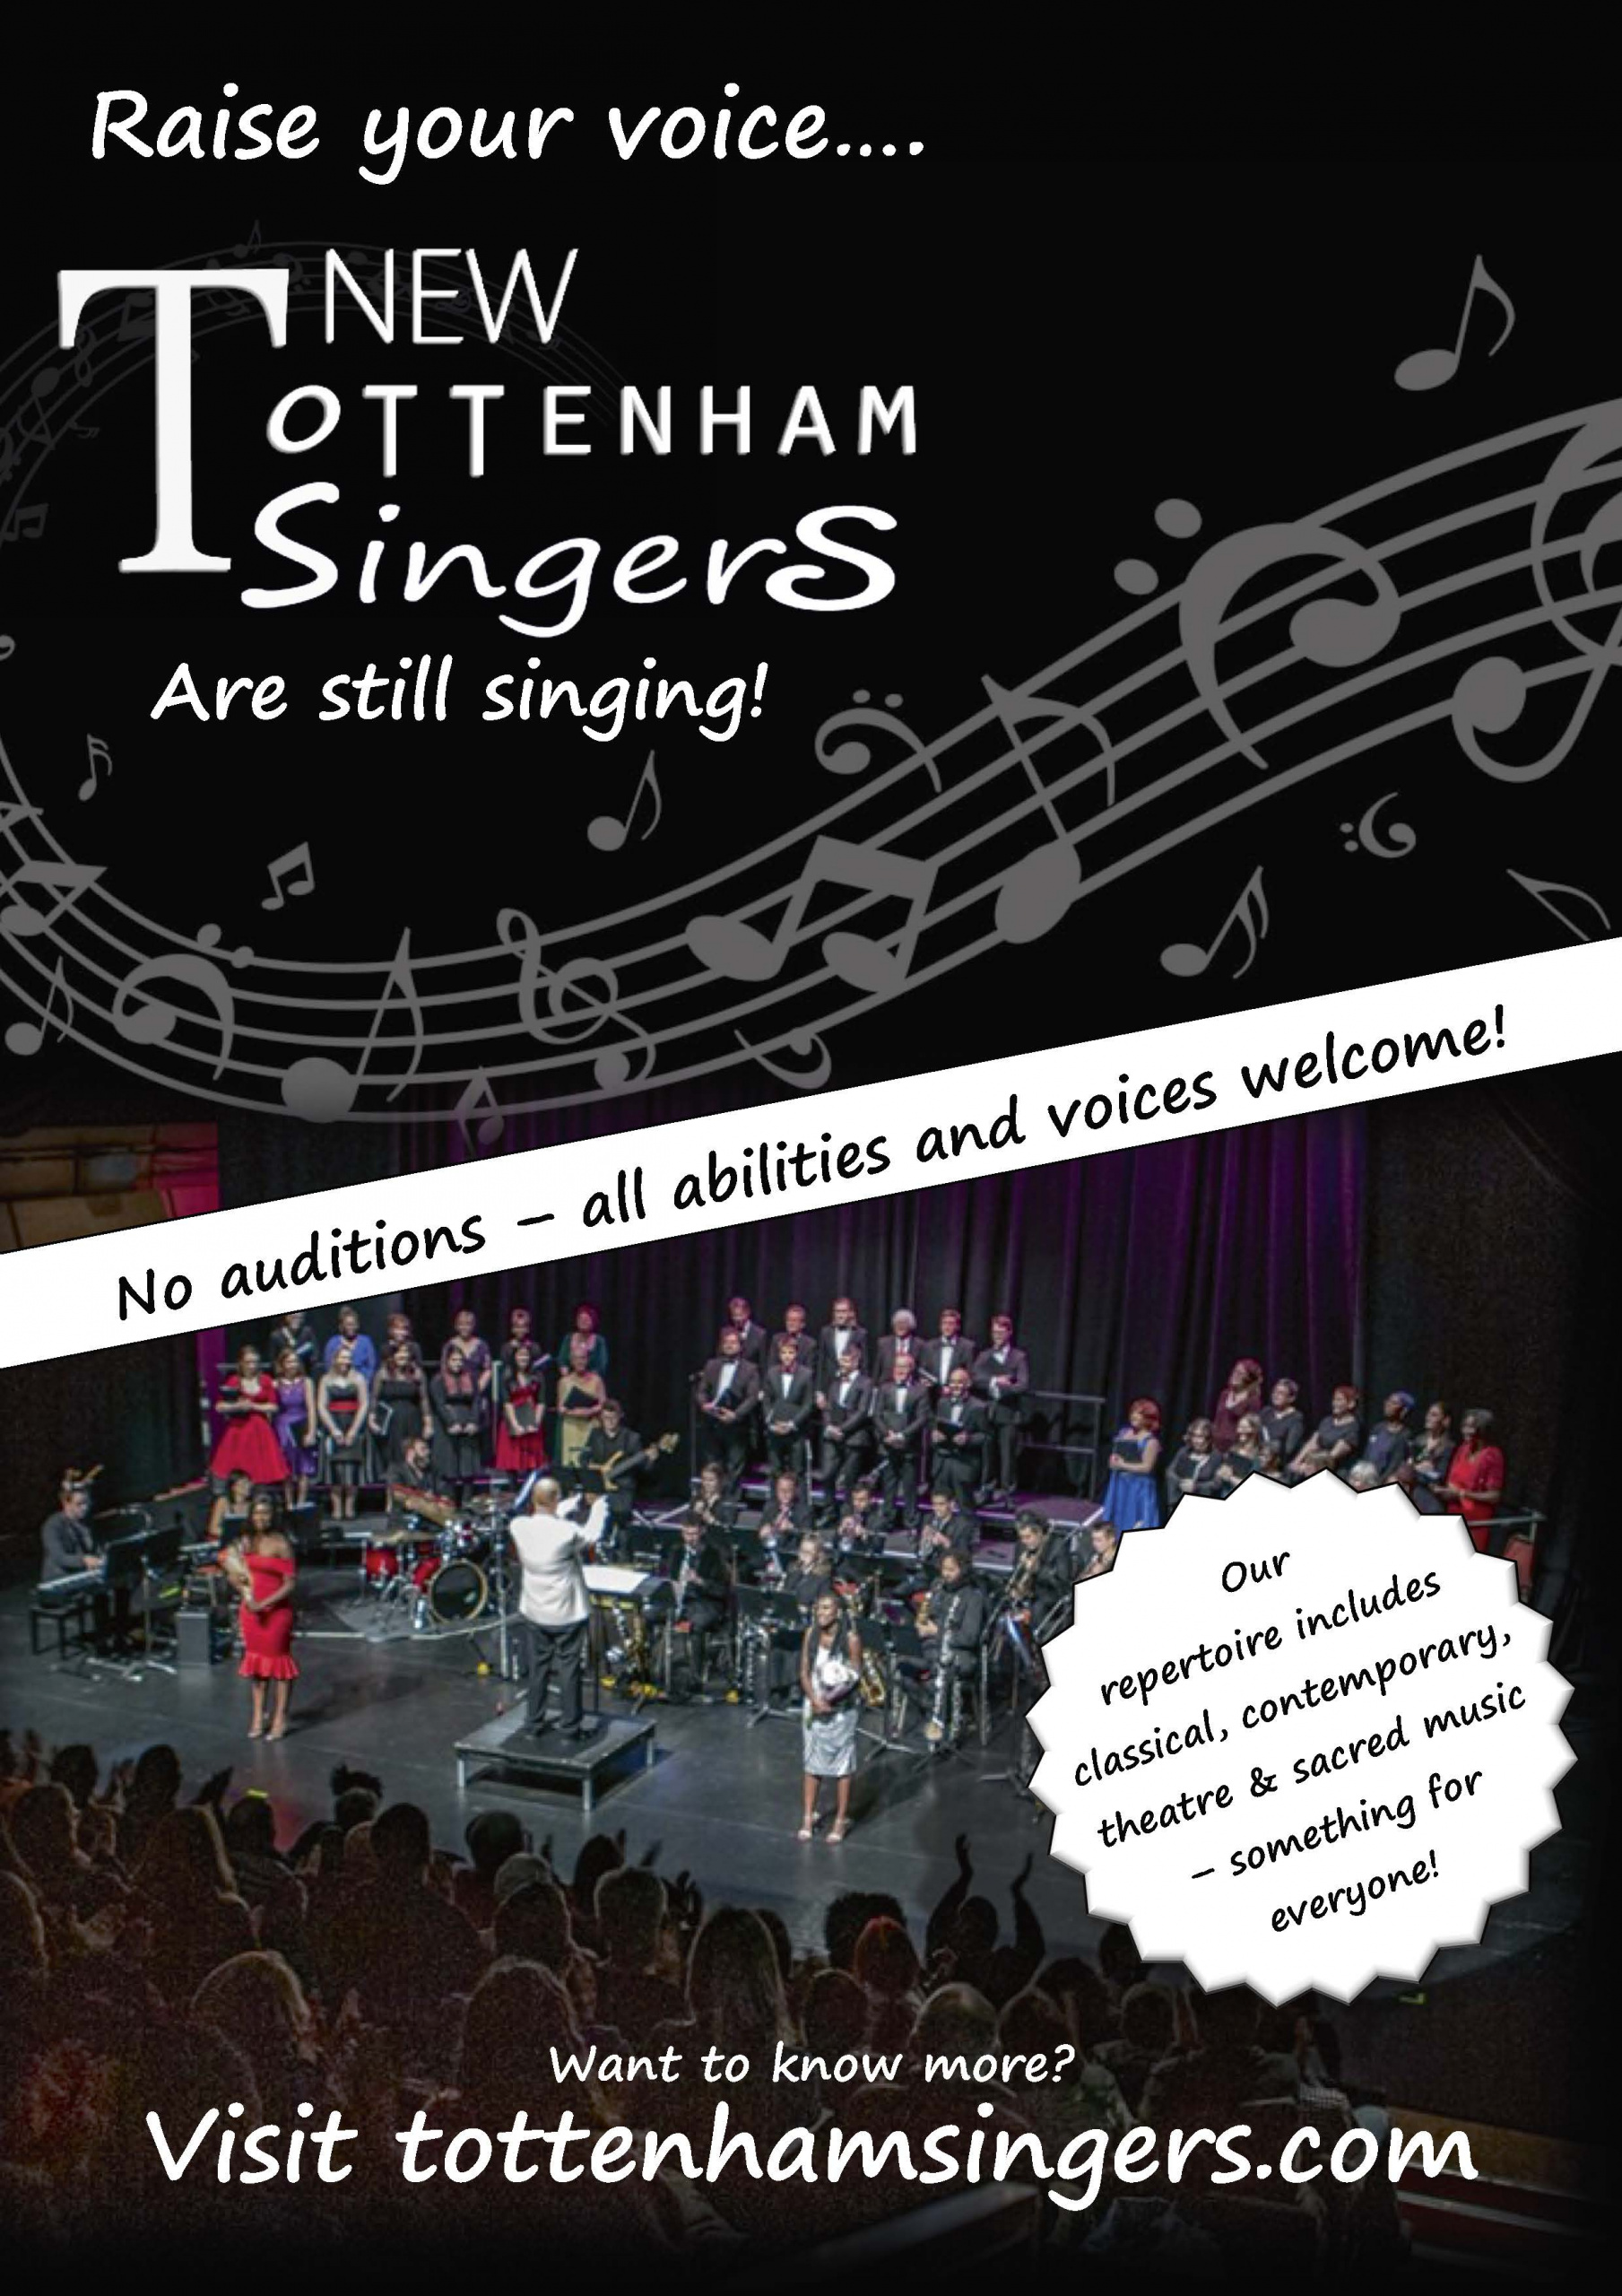 A black poster with white text, the image is of the choir performing in formal dress on the stage of the Bernie Grant Arts Centre. The text reads: Raise your voice...New Tottenham Singers are still singing! No auditions, all abilities and voices welcome! Visit tottenhamsingers.com for more info.